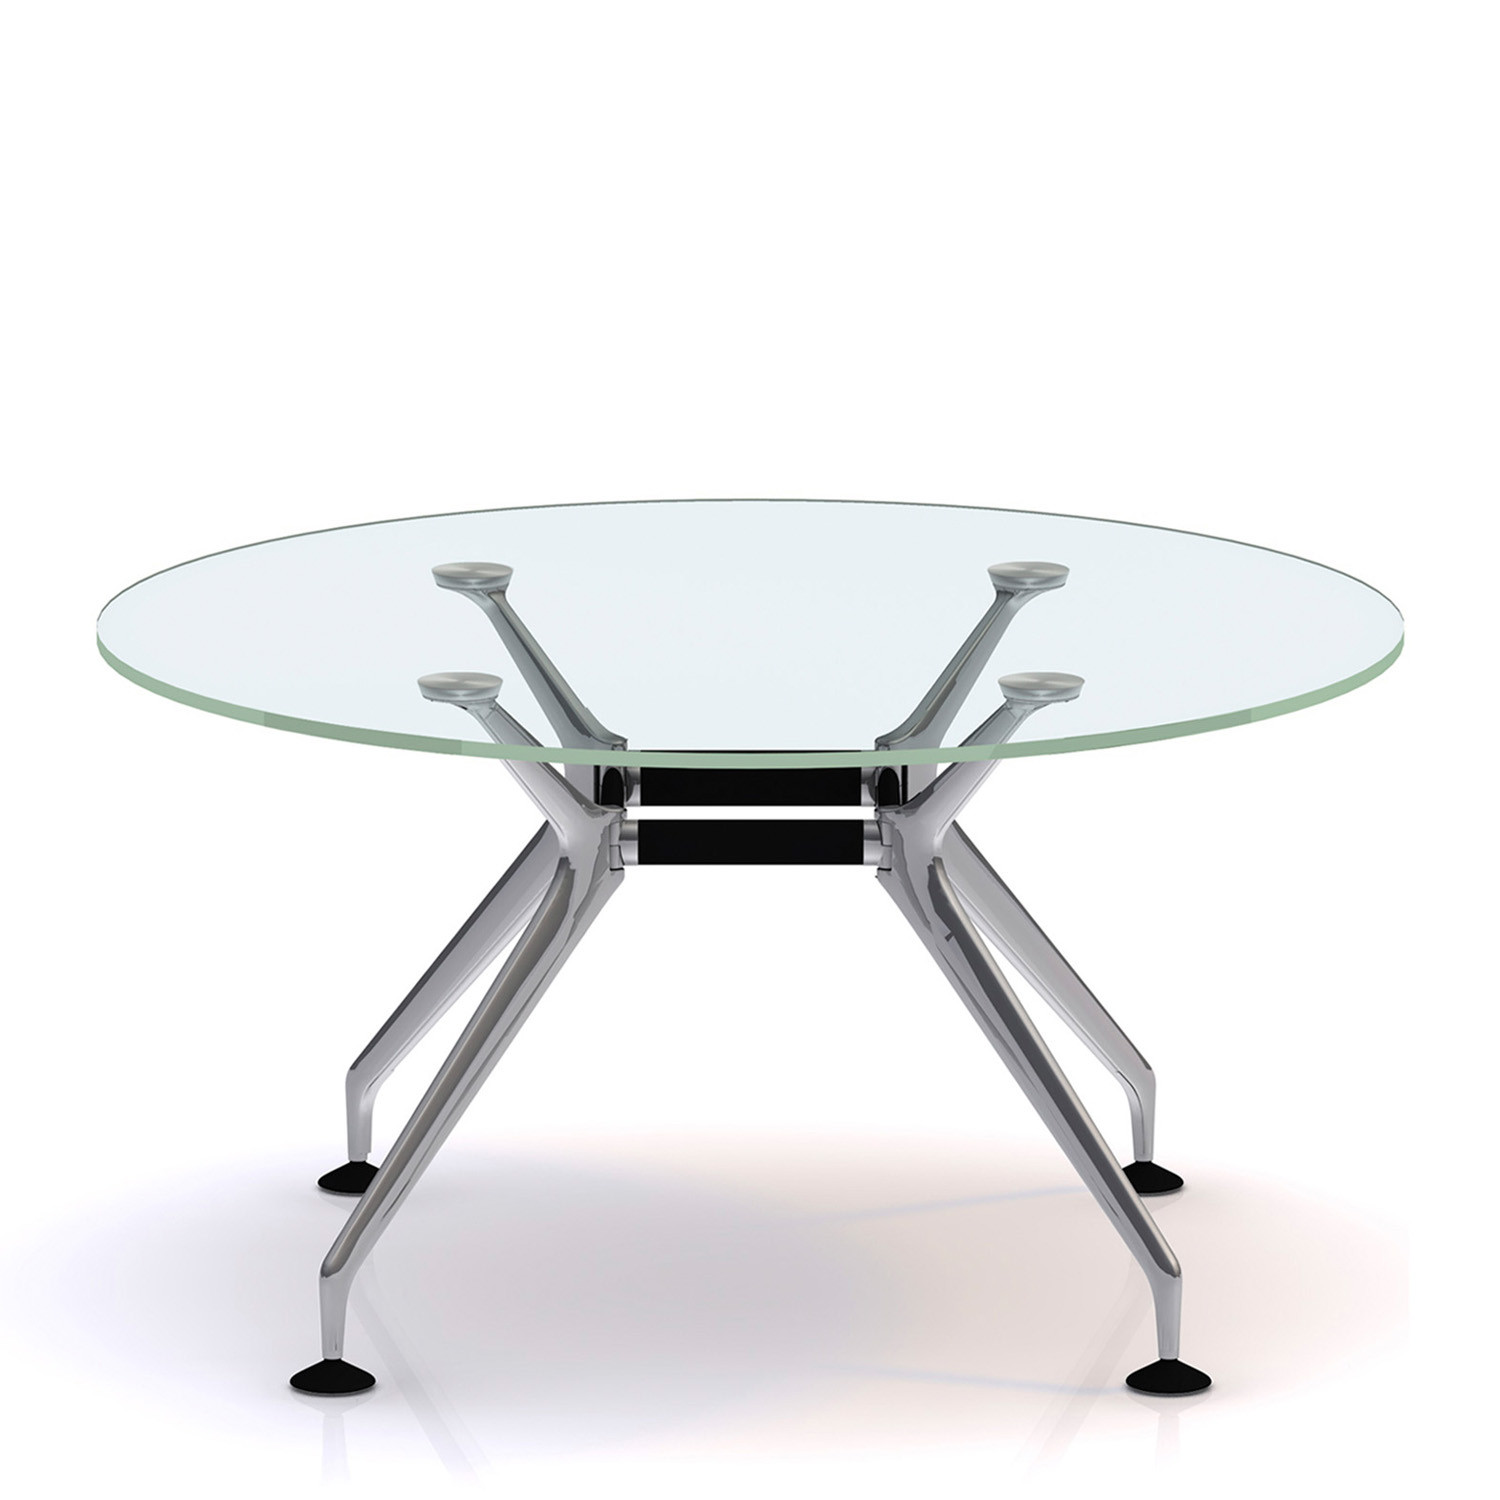 lano tables meeting conference tables apres furniture round